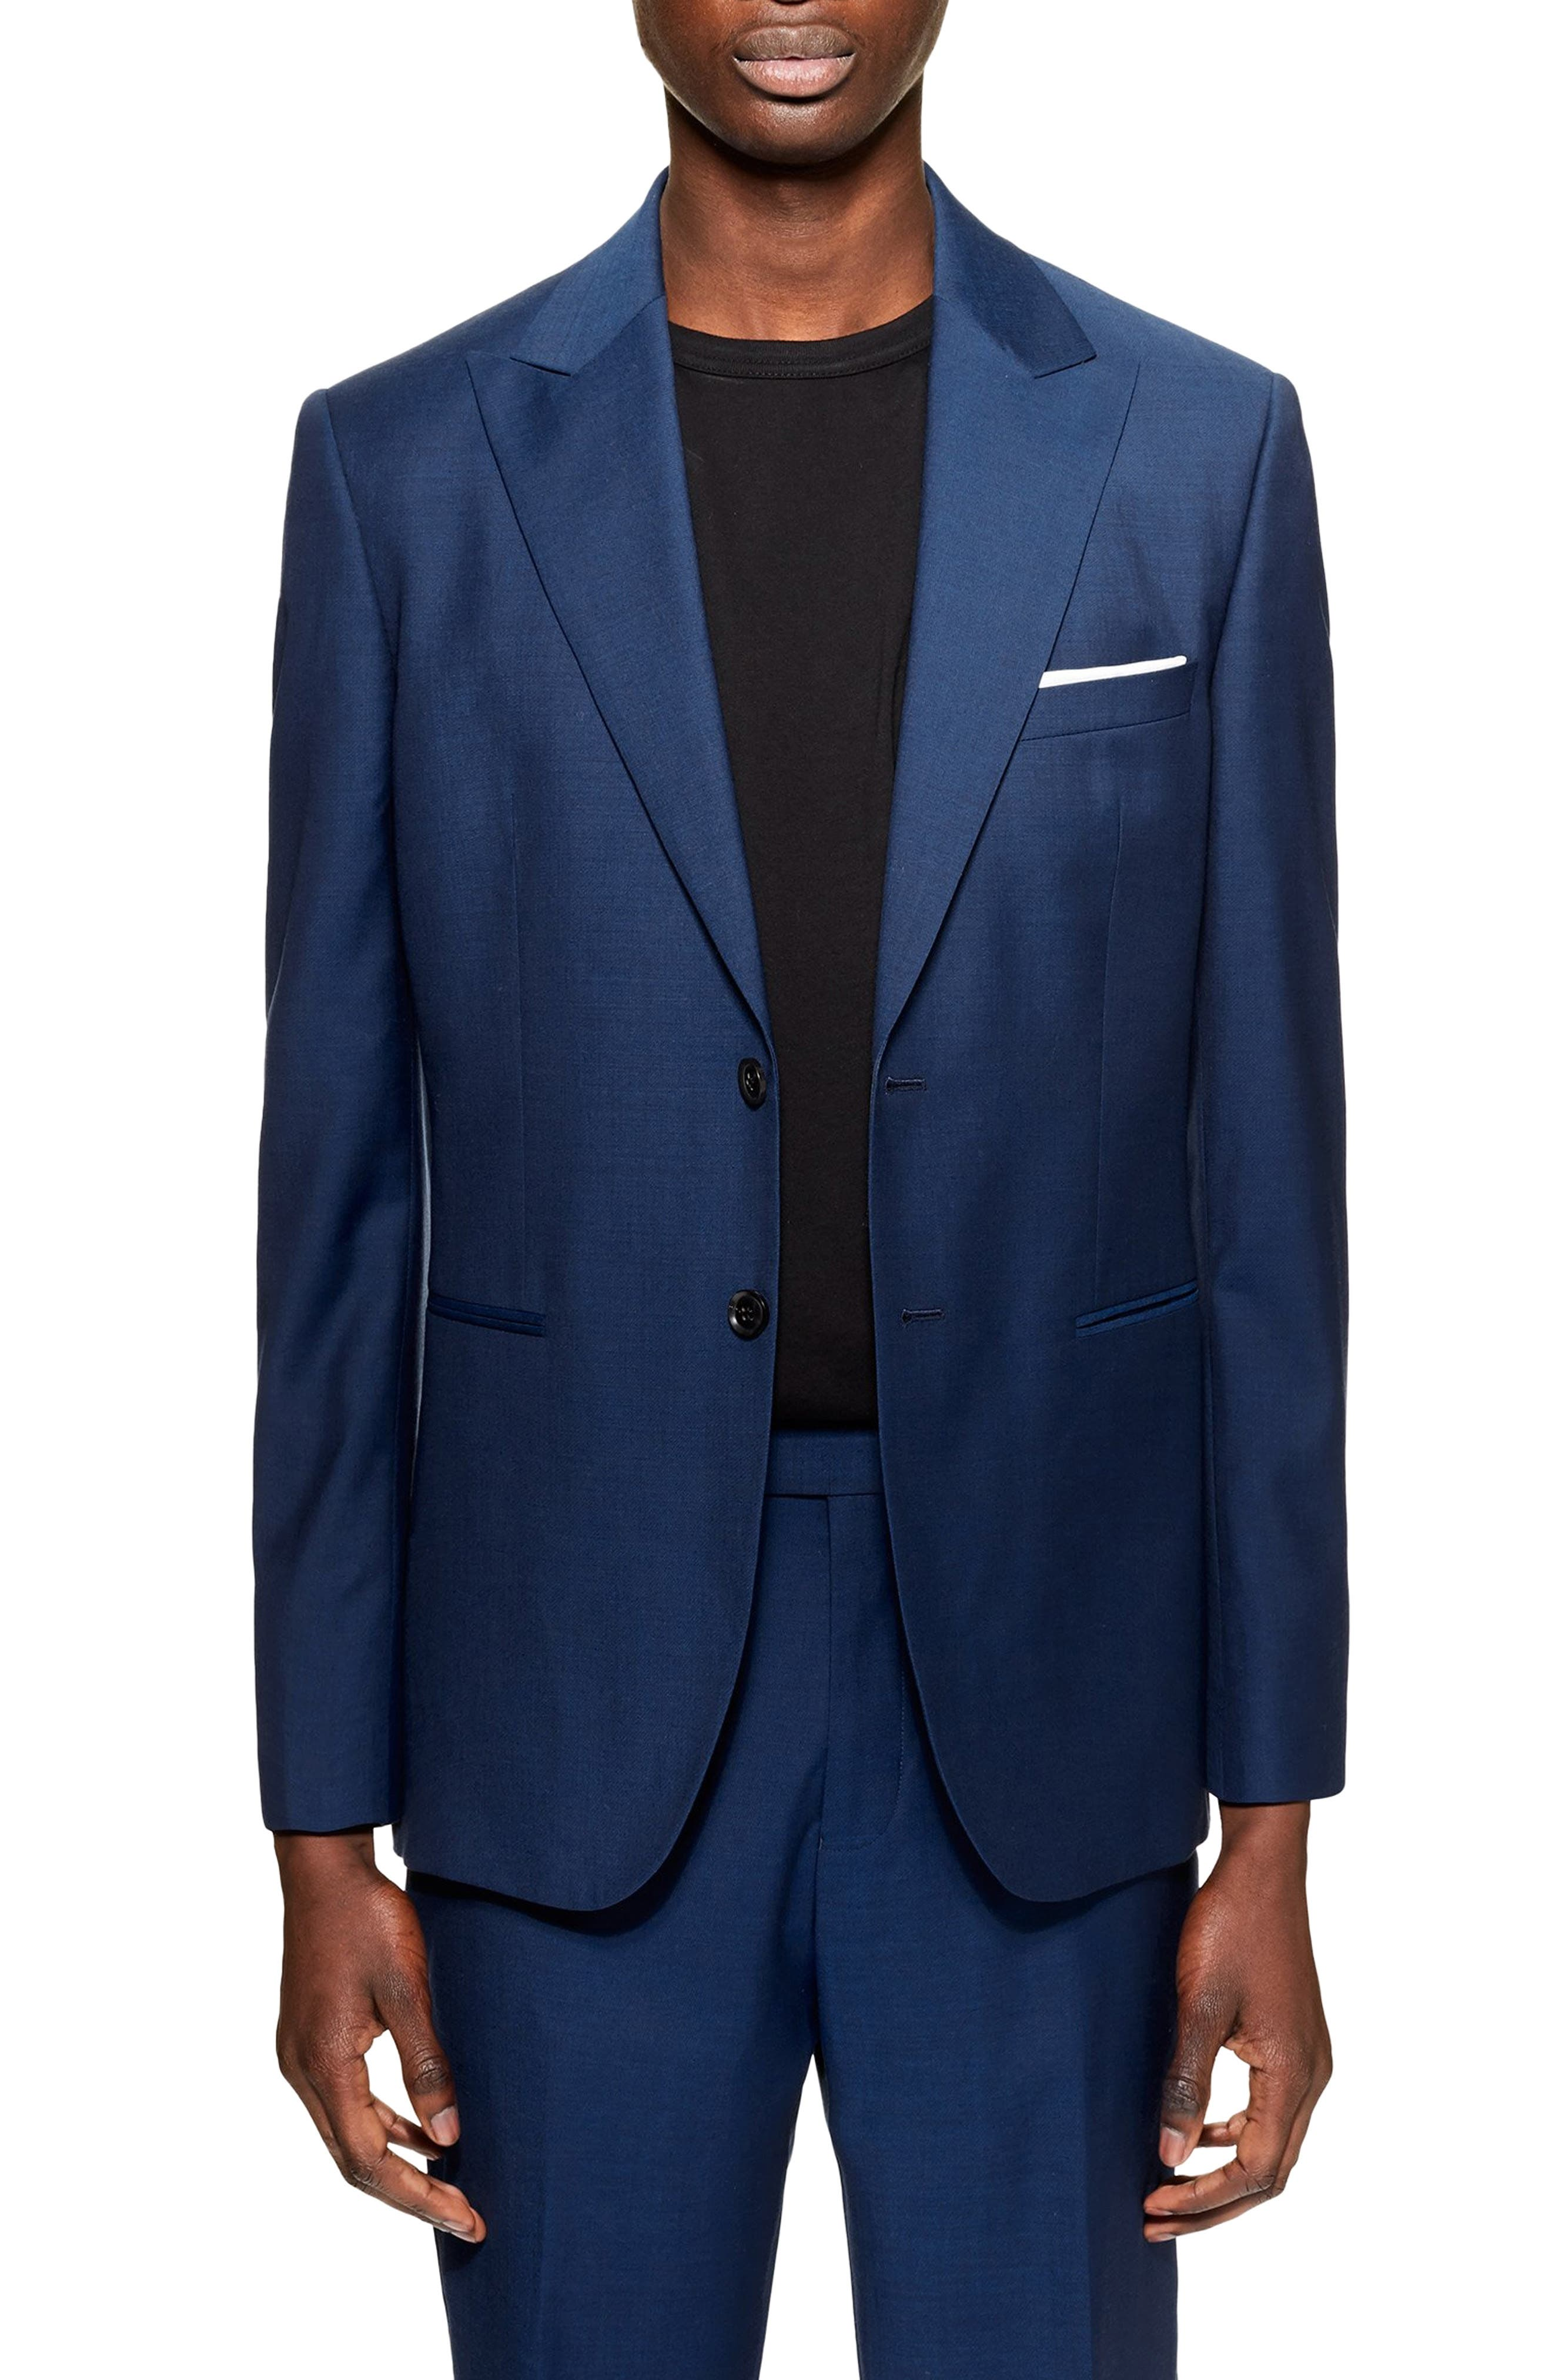 Casely Hayford Skinny Fit Suit Jacket, Main, color, NAVY BLUE